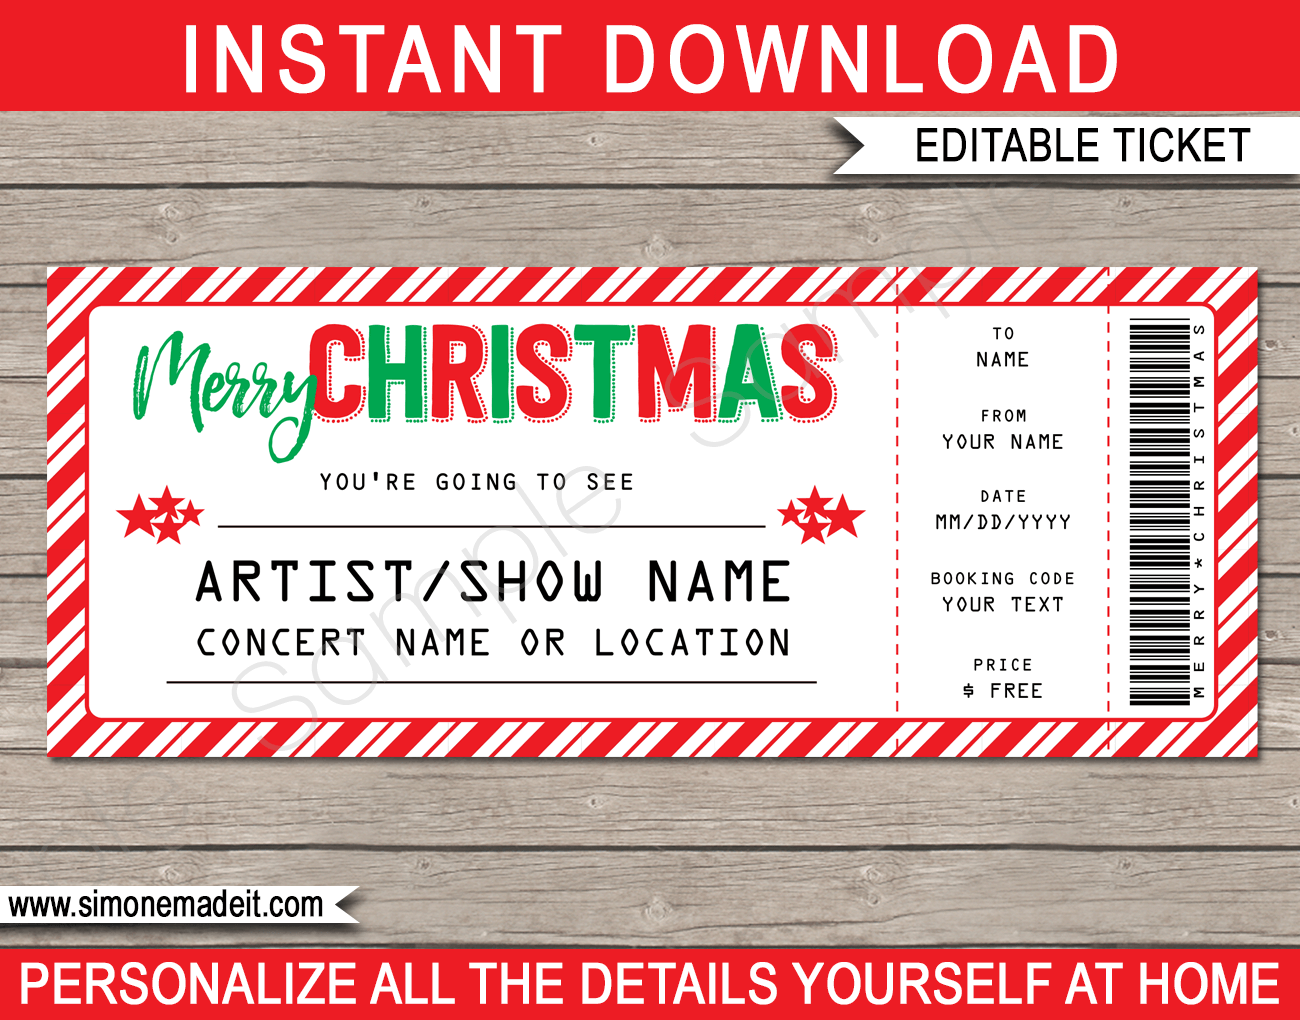 Printable Christmas Gift Concert Ticket Surprise Tickets To A Band Show Music Festival Performance Artist Fake